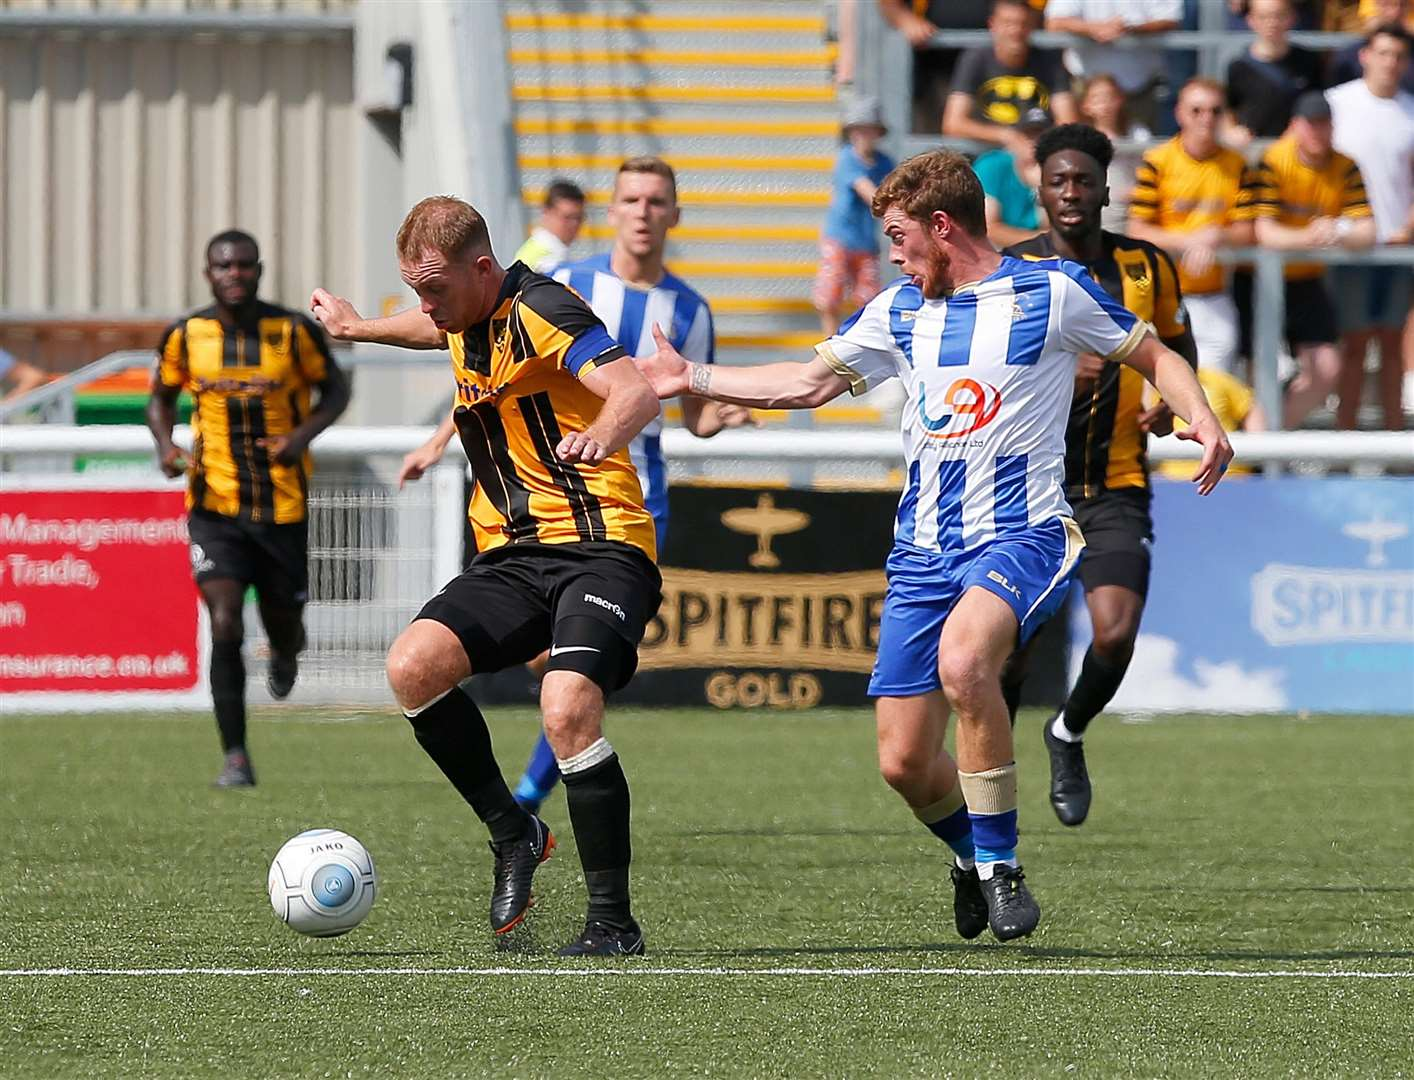 Maidstone captain Stuart Lewis in the thick of things at the Gallagher Picture: Andy Jones